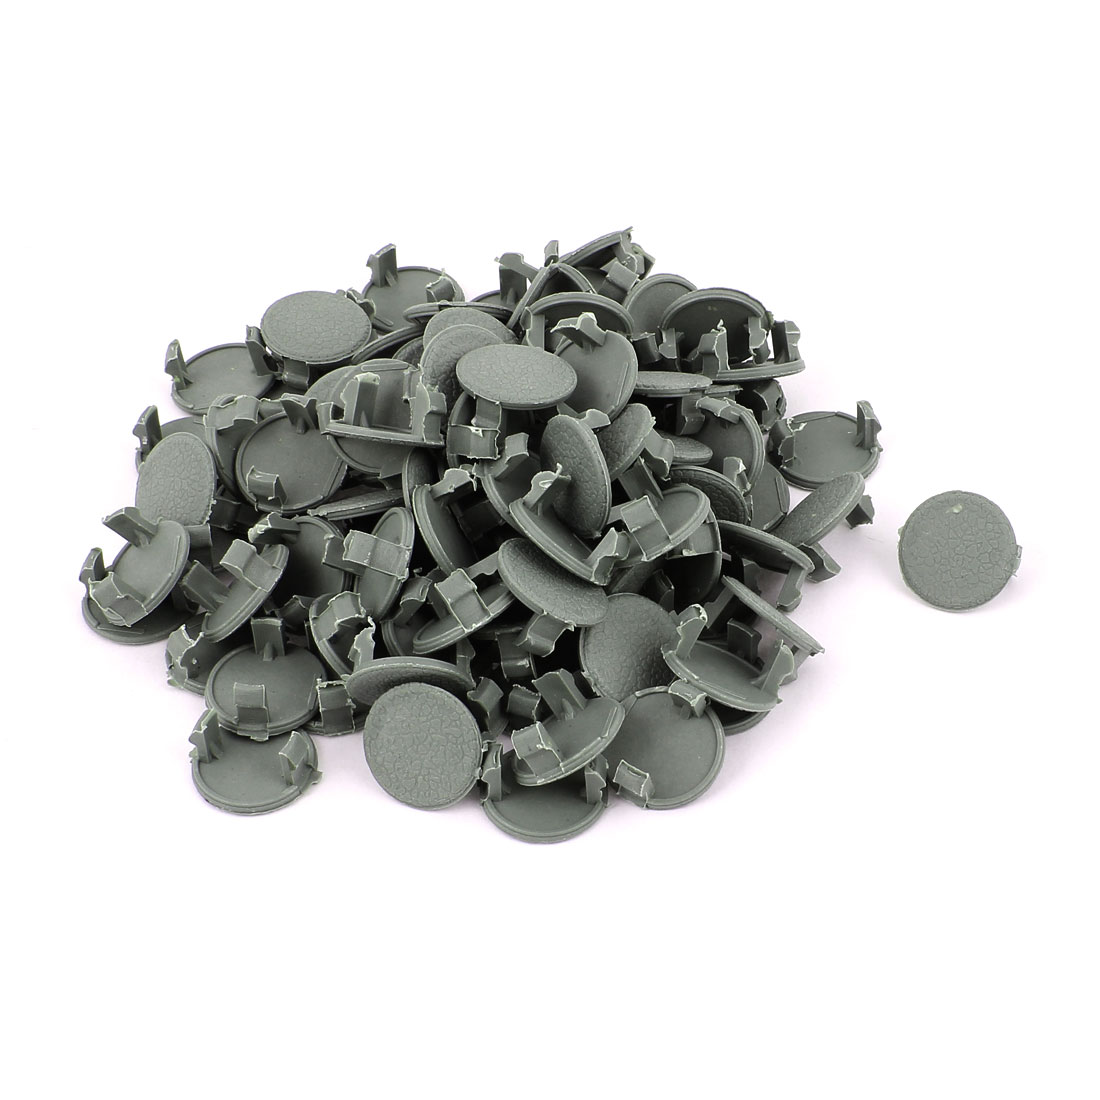 Plastic Rivets Auto Car Fastener Clips 22mm Head Diameter Gray 100 Pcs